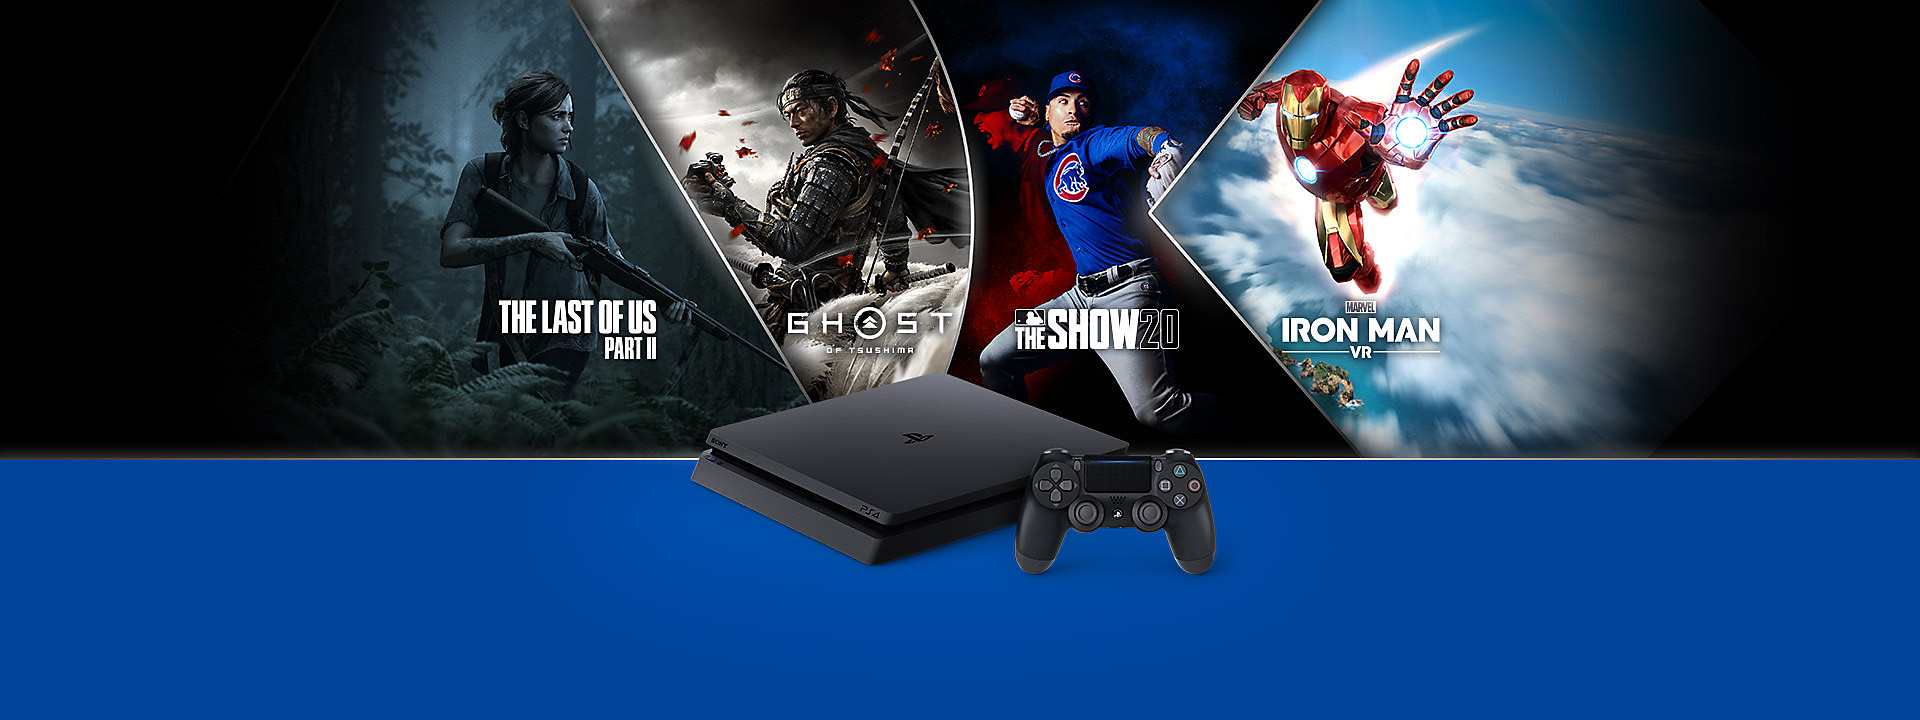 Playstation 4 Systems Bundles Playstation